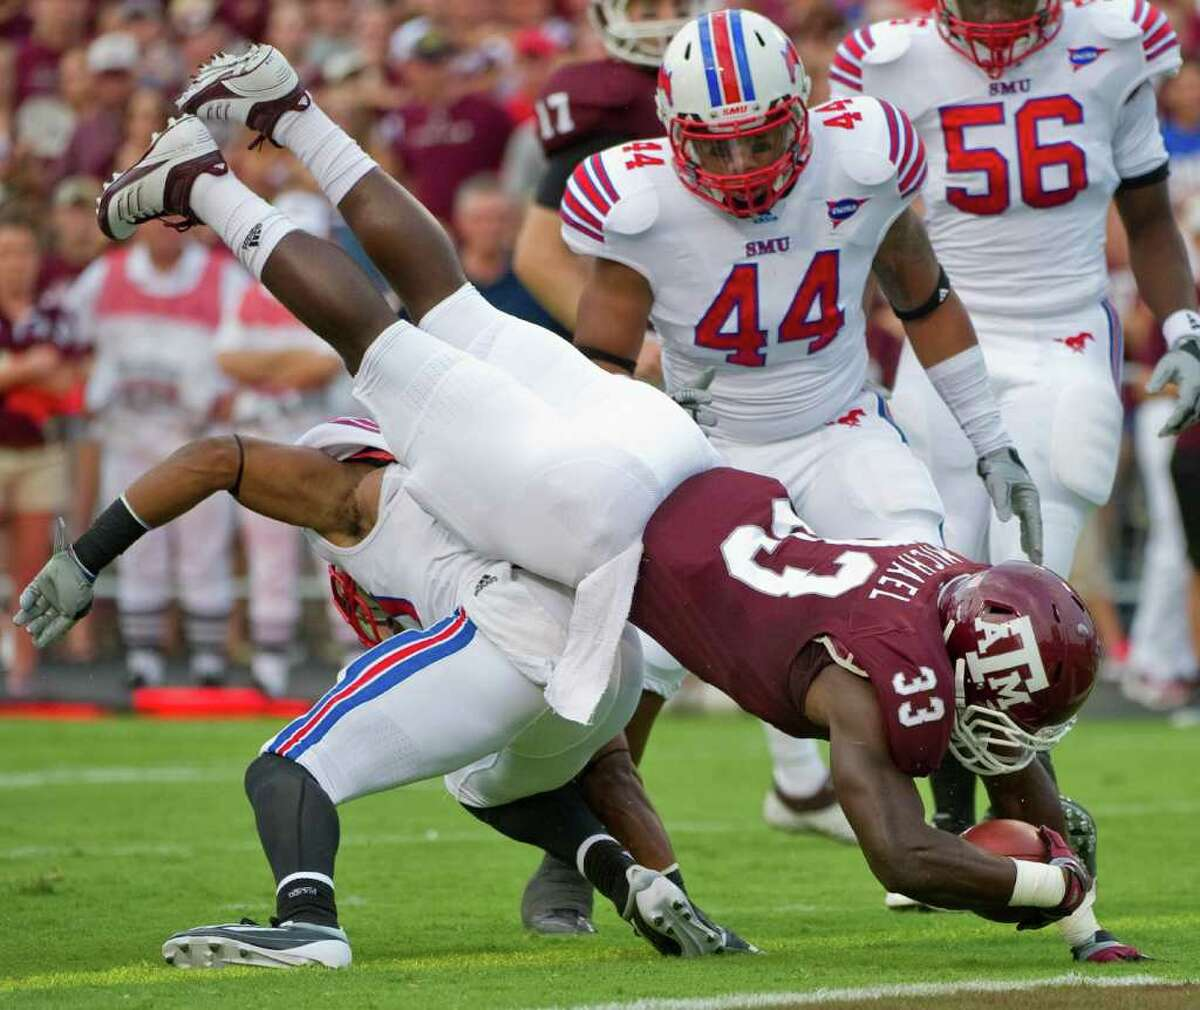 Texas A&M running back Christine Michael (33), a West Brook grad, dives over SMU's Ryan Smith, bottom, as Taylor Reed (44), also a West Brook grad, helps during the first quarter of Sunday's game in College Station. (AP Photo/Dave Einsel)